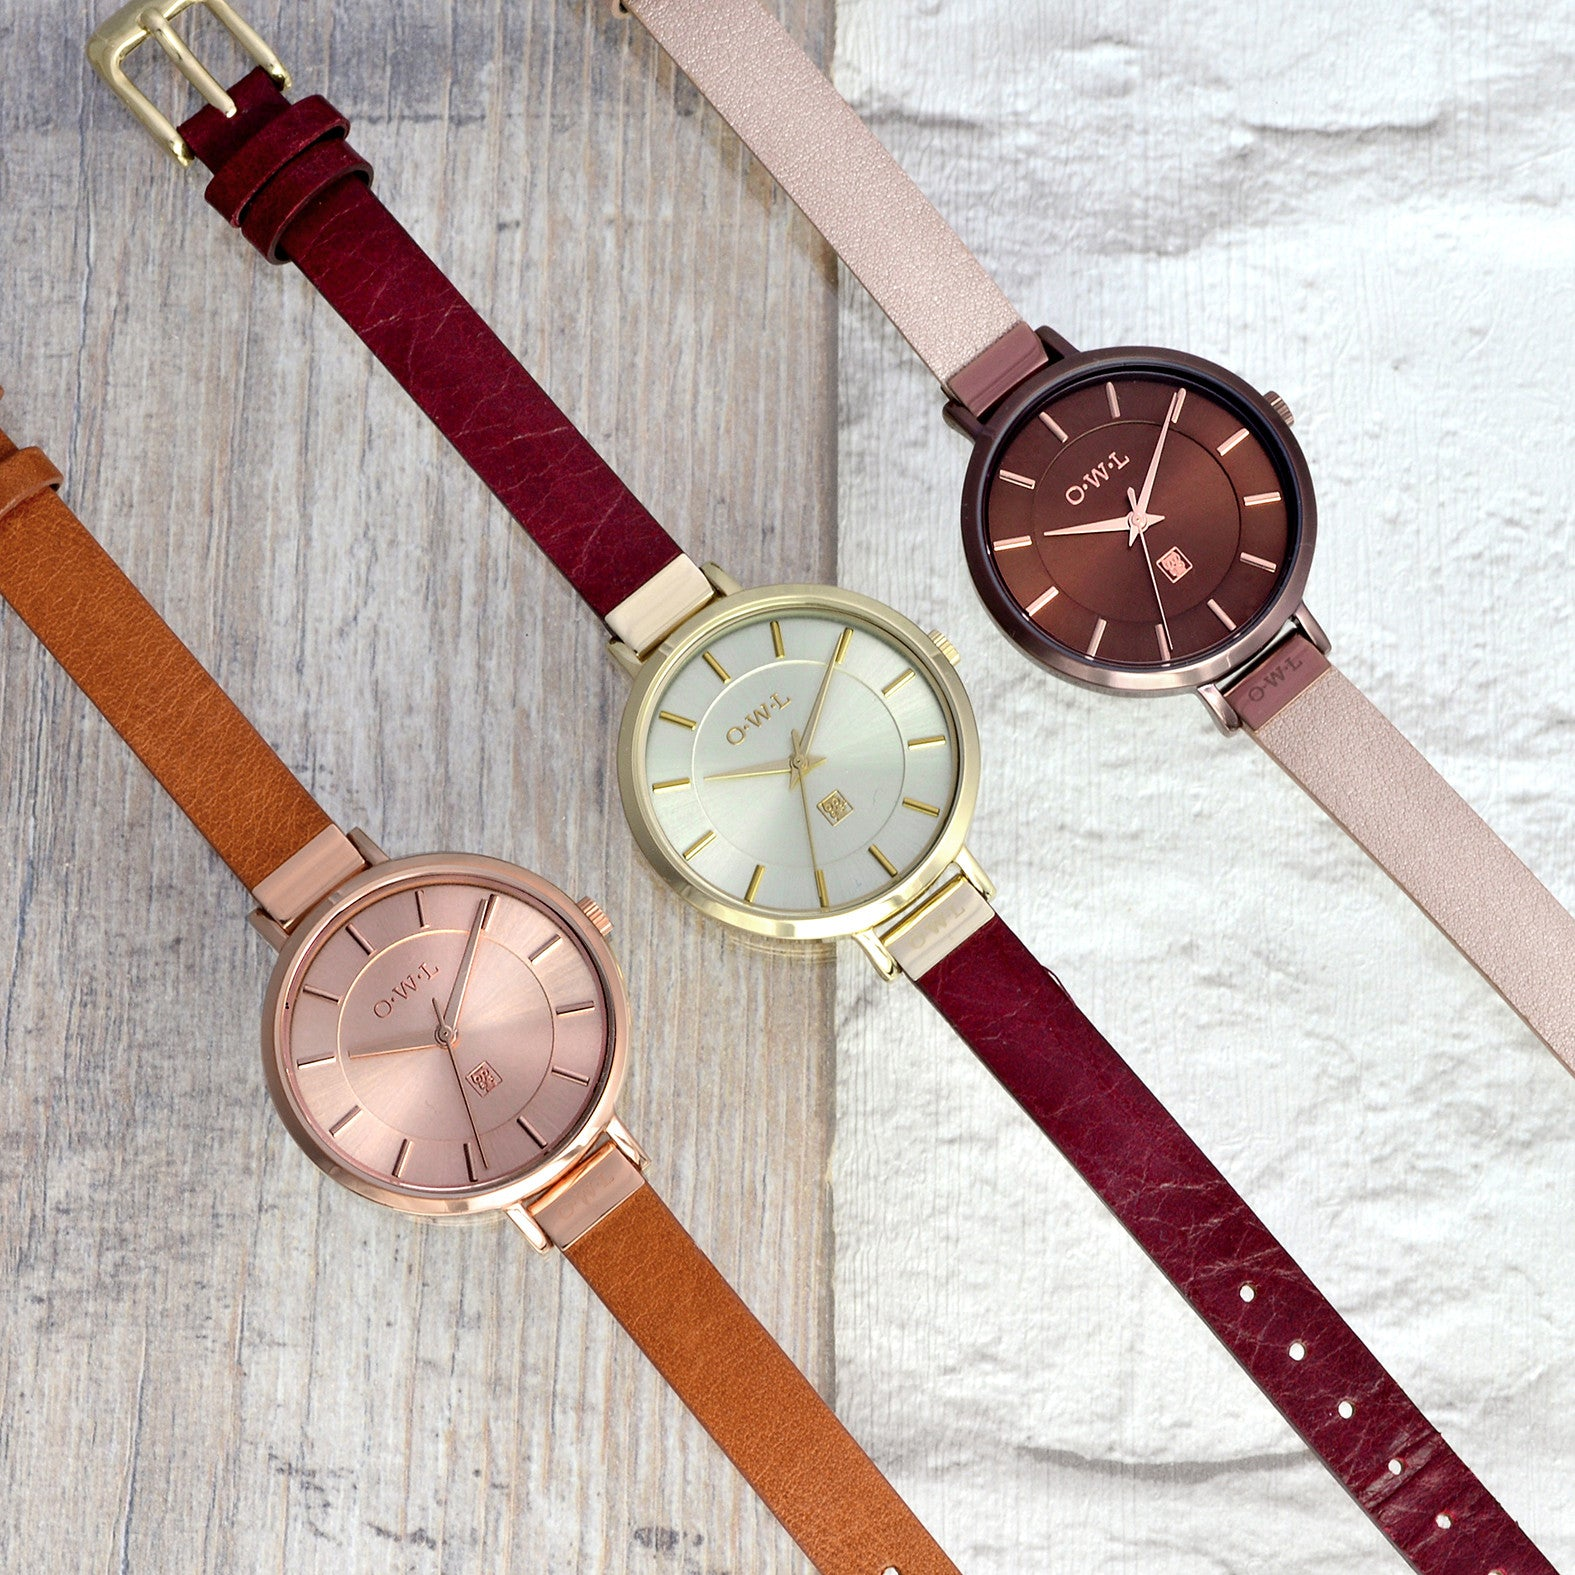 citricouture watch styling with watches caravelle ny